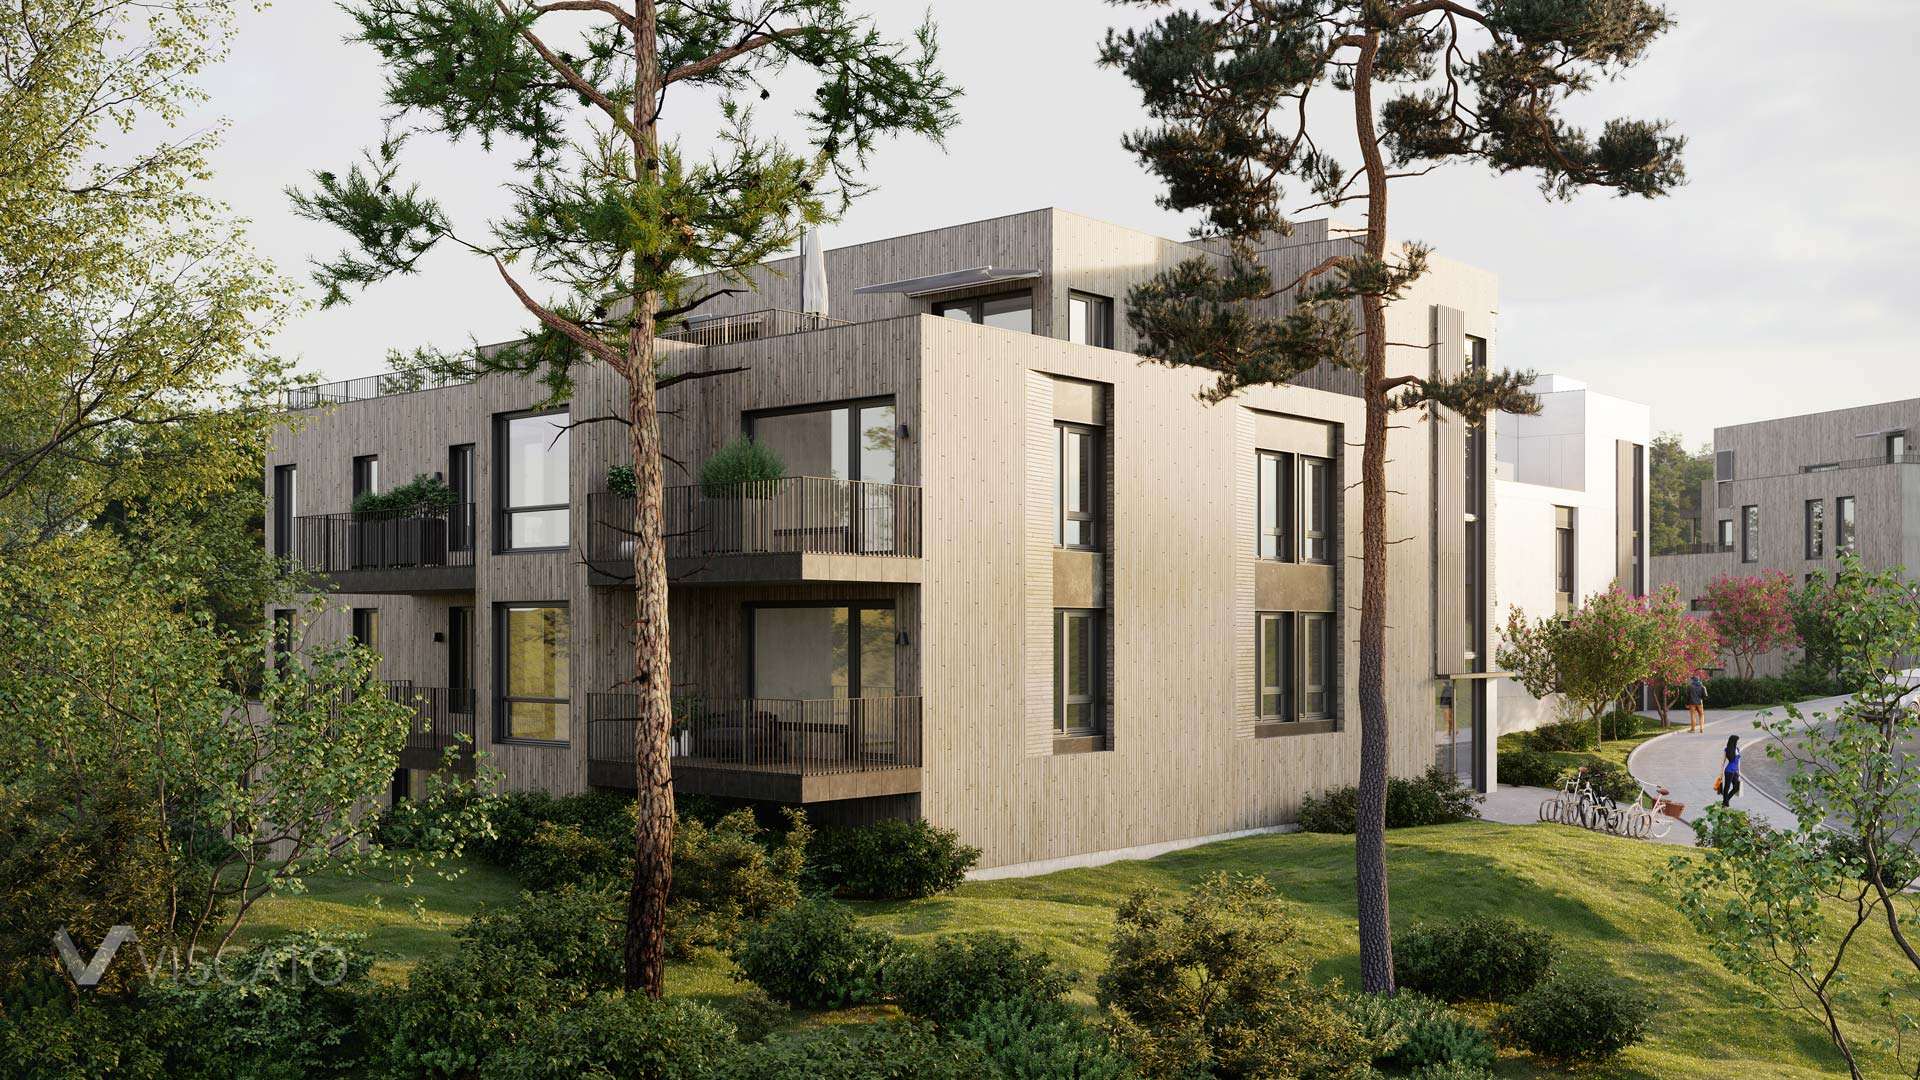 Building with a wooden facade by the forest, Viscato 3D